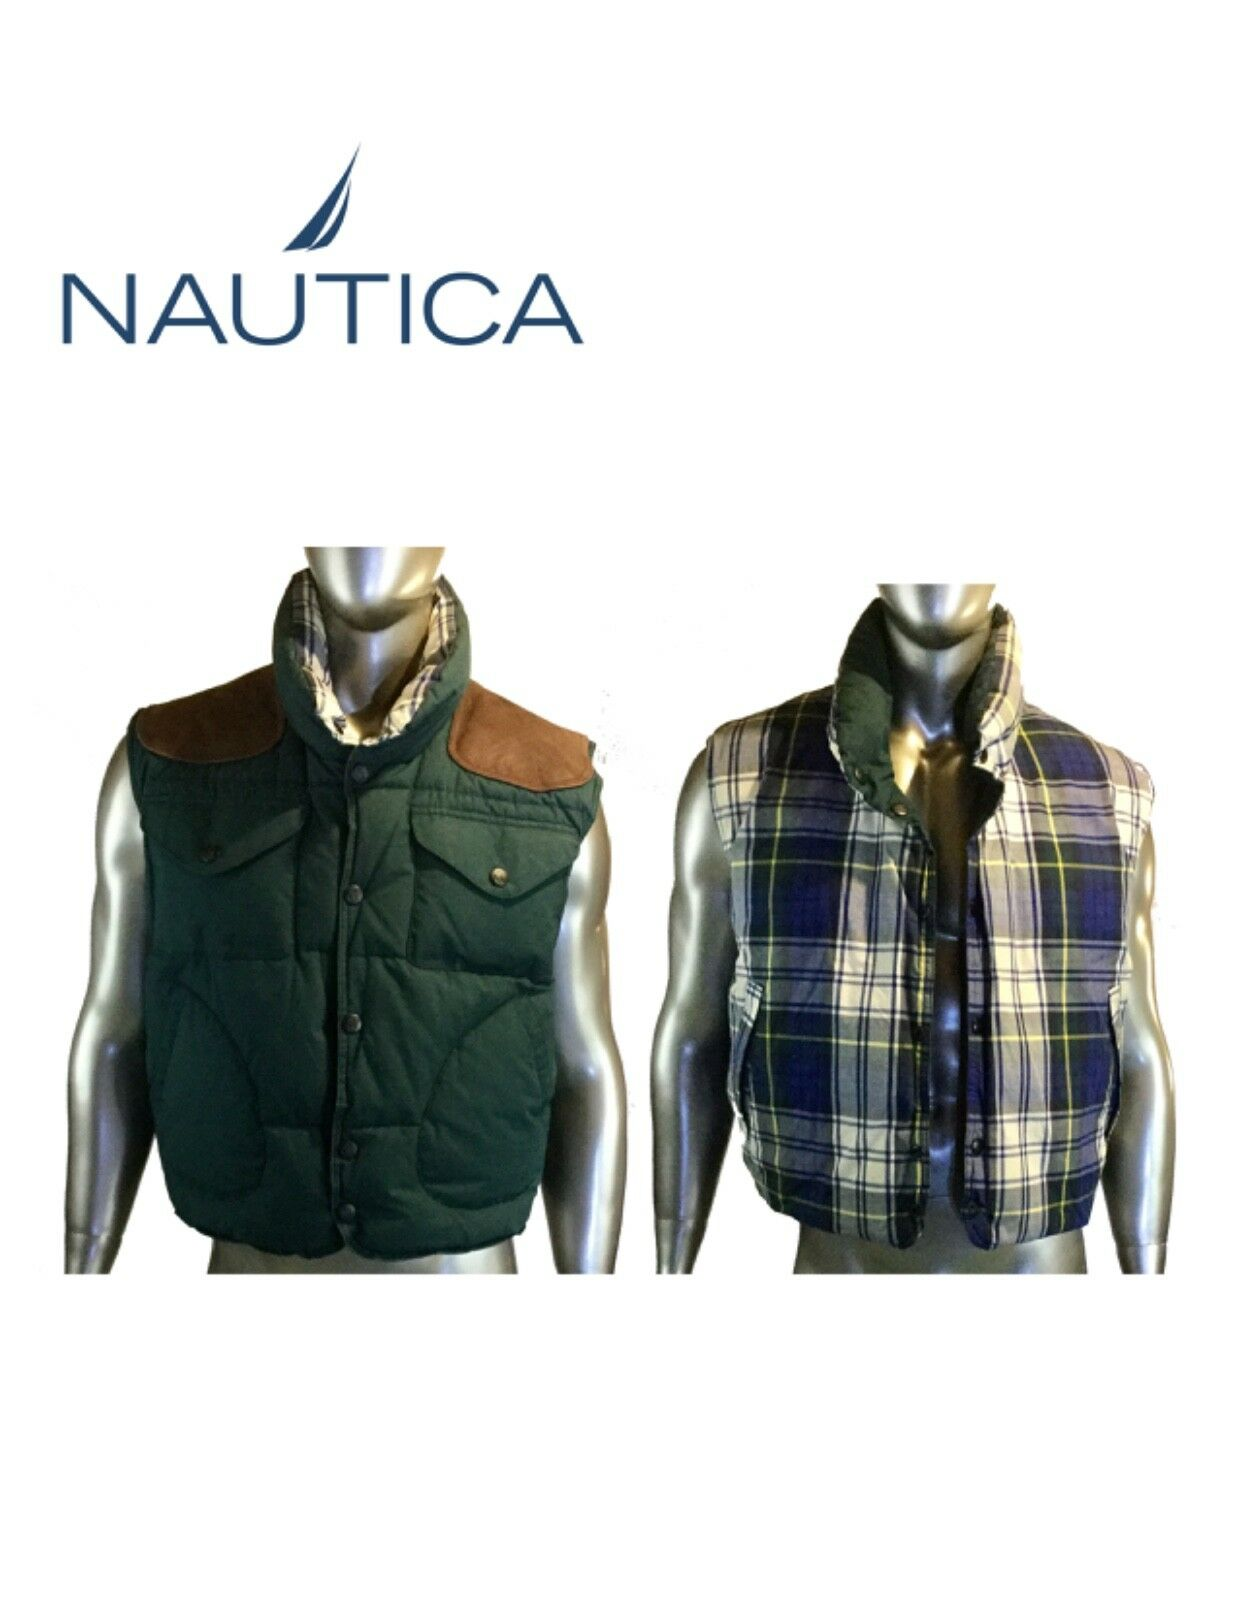 Vintage Nautica reversible puffer vest, See measurements for size